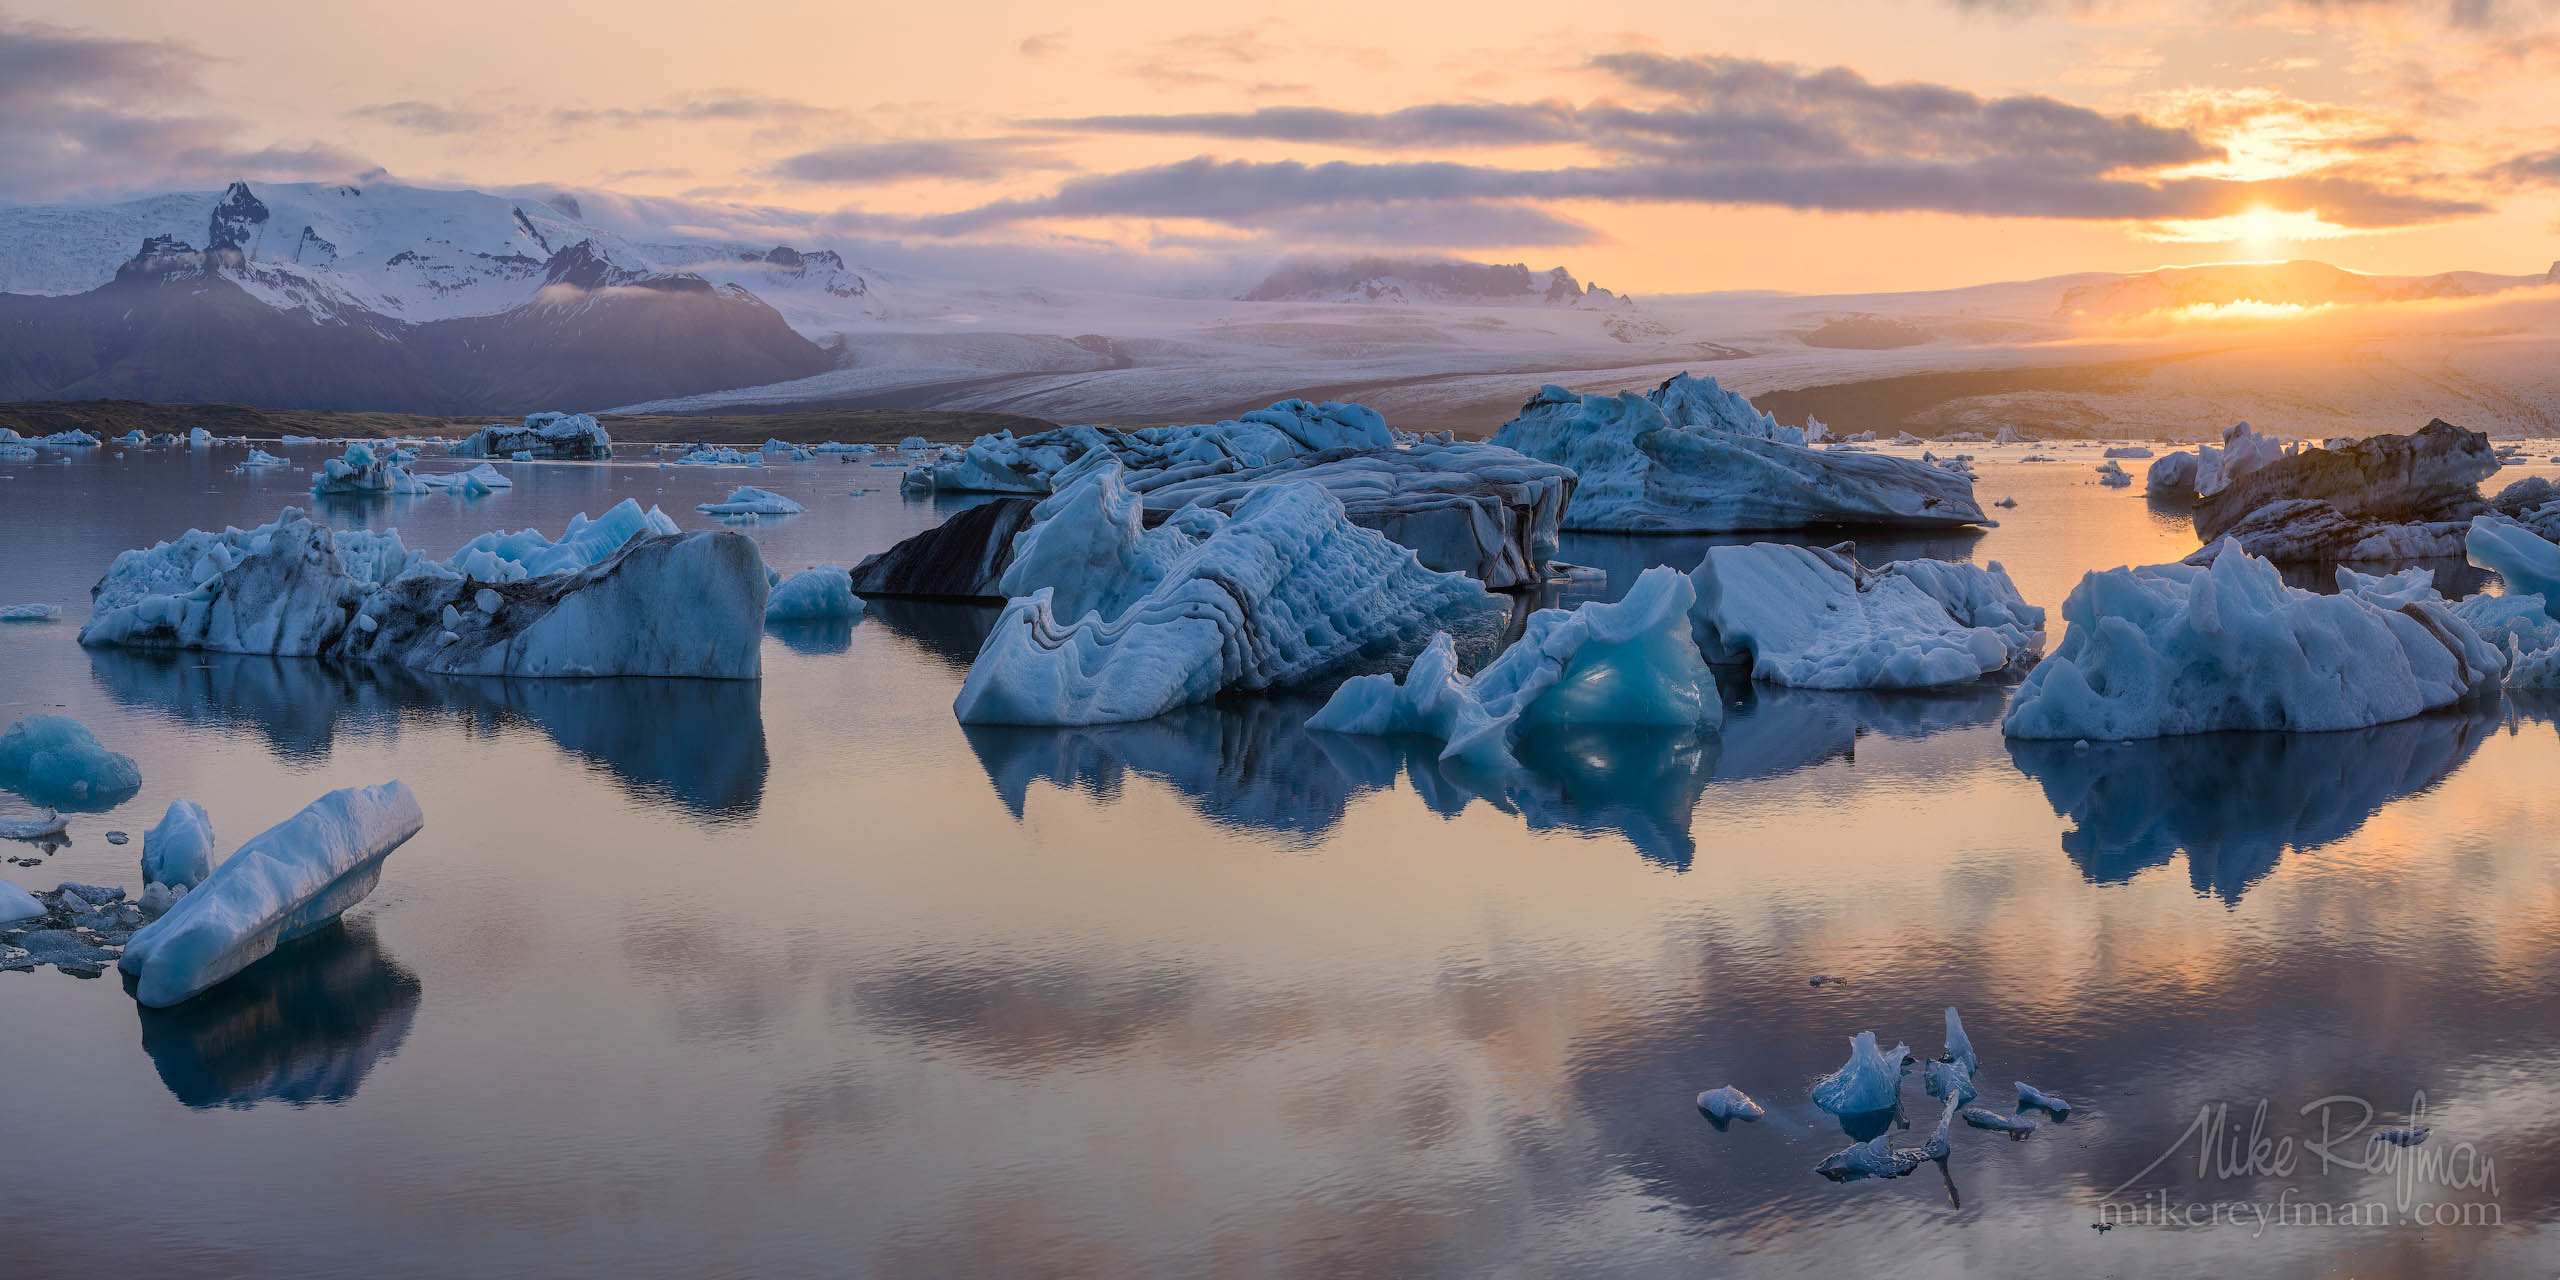 Sunset at Jokulsarlon Glacial Lagoon, Iceland P12-MRD8B2924-60-Pano - Selected panoramic images with 2:1 aspect ratio - Mike Reyfman Photography